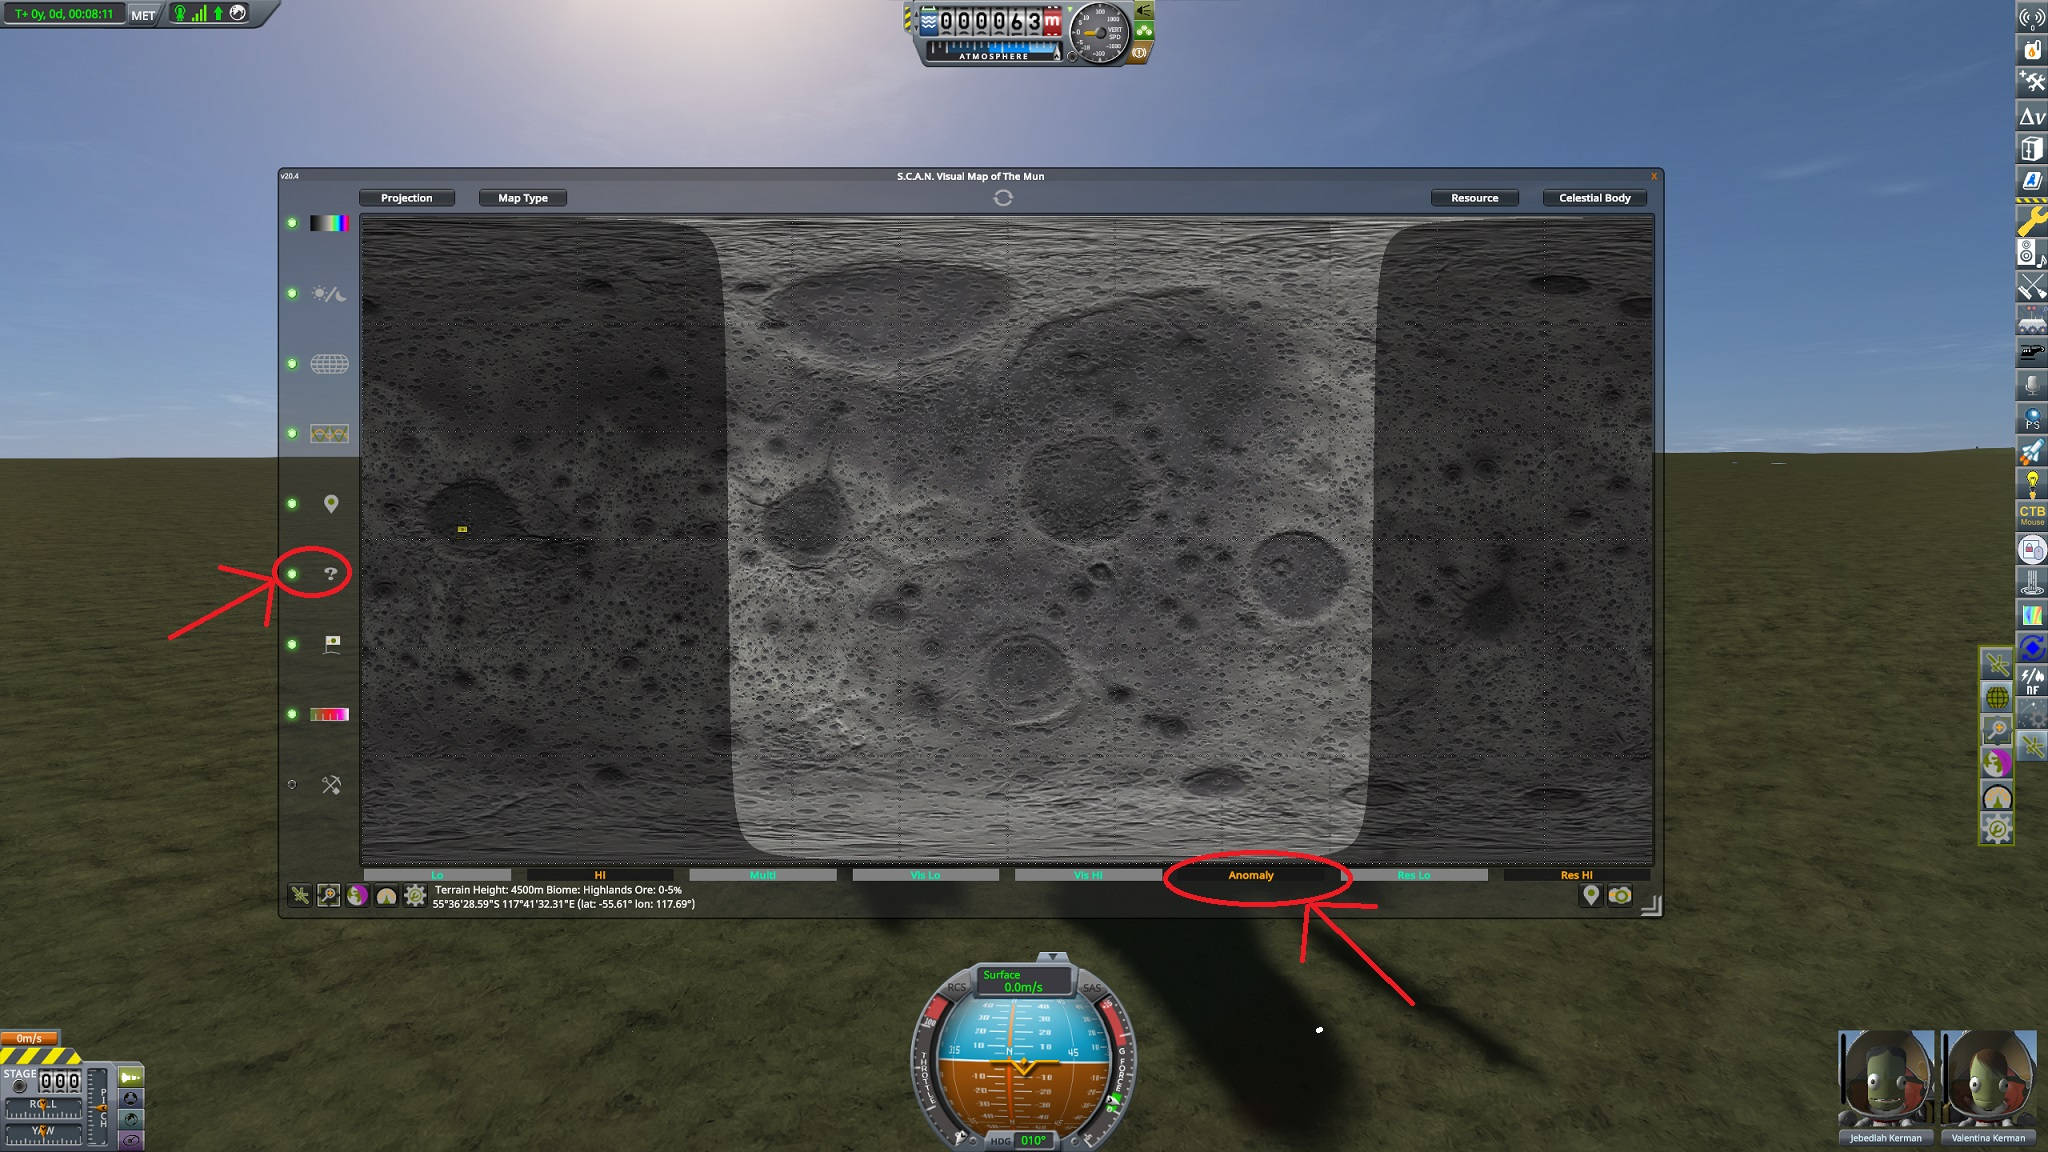 KSP_1_11_2_NO_ANOMALY_LOCATED_ISSUE.jpg